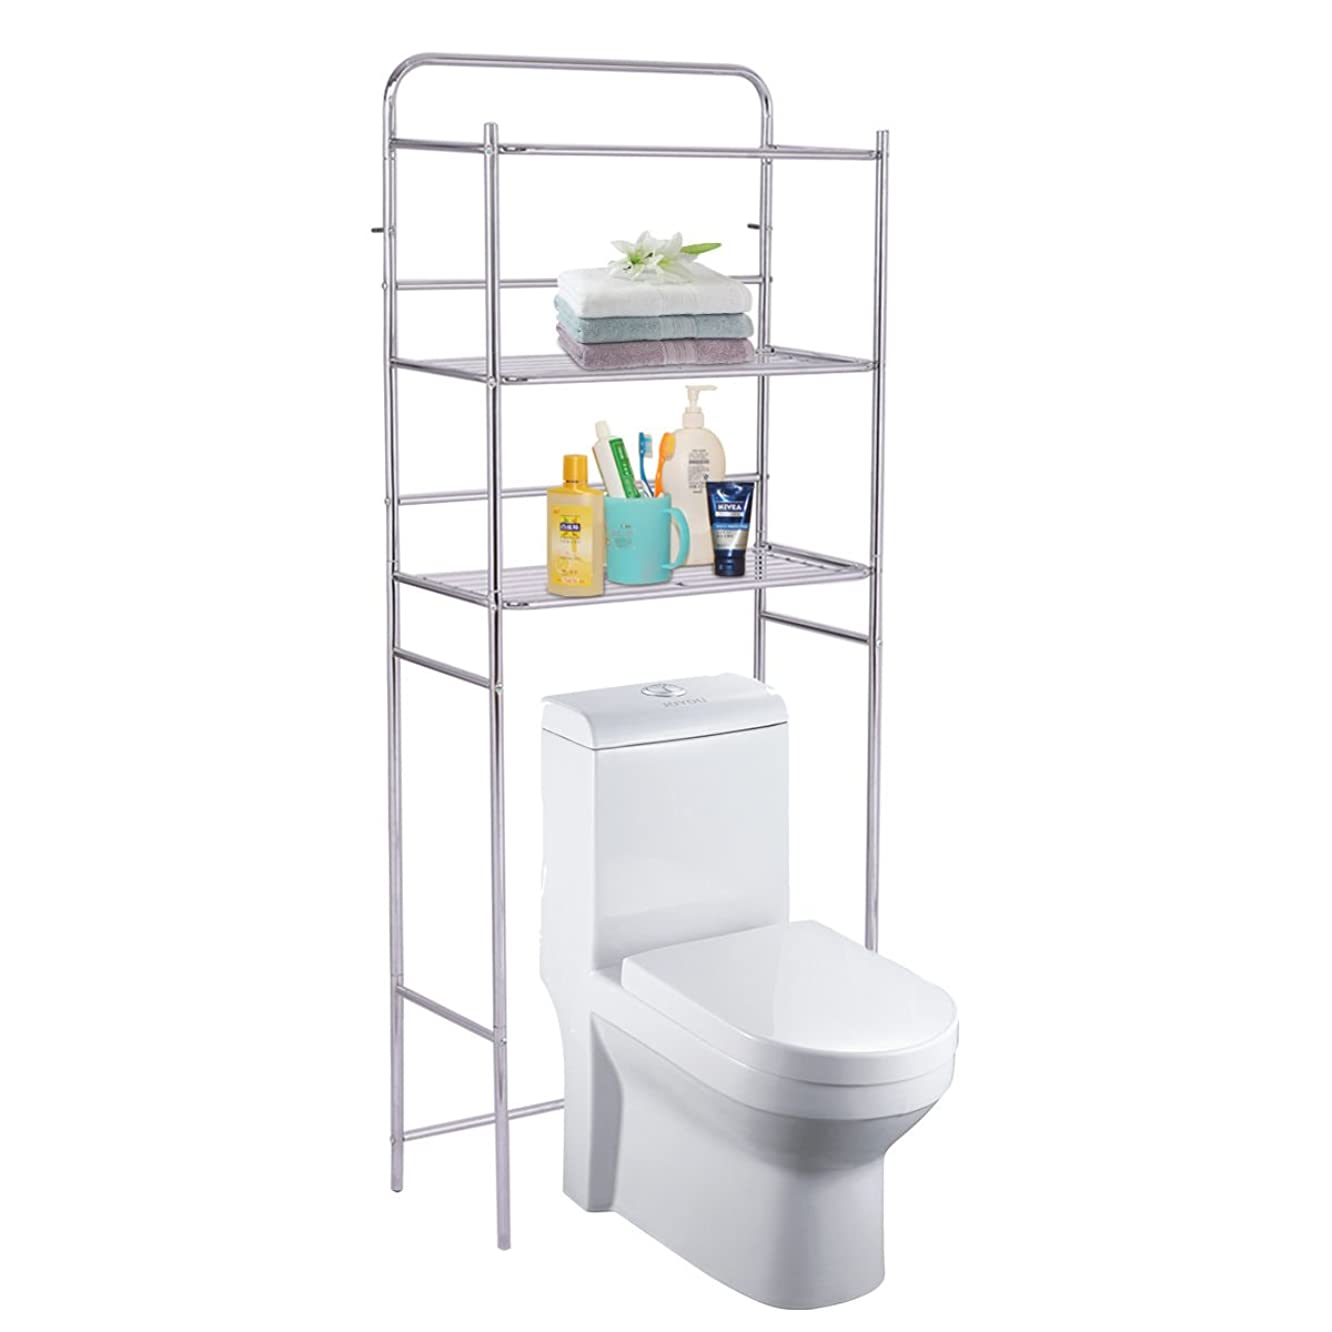 MoonNewyork The Toilet Space Saver Bathroom Storage 3-Tier Over Shelf Rack Organizer Chrome